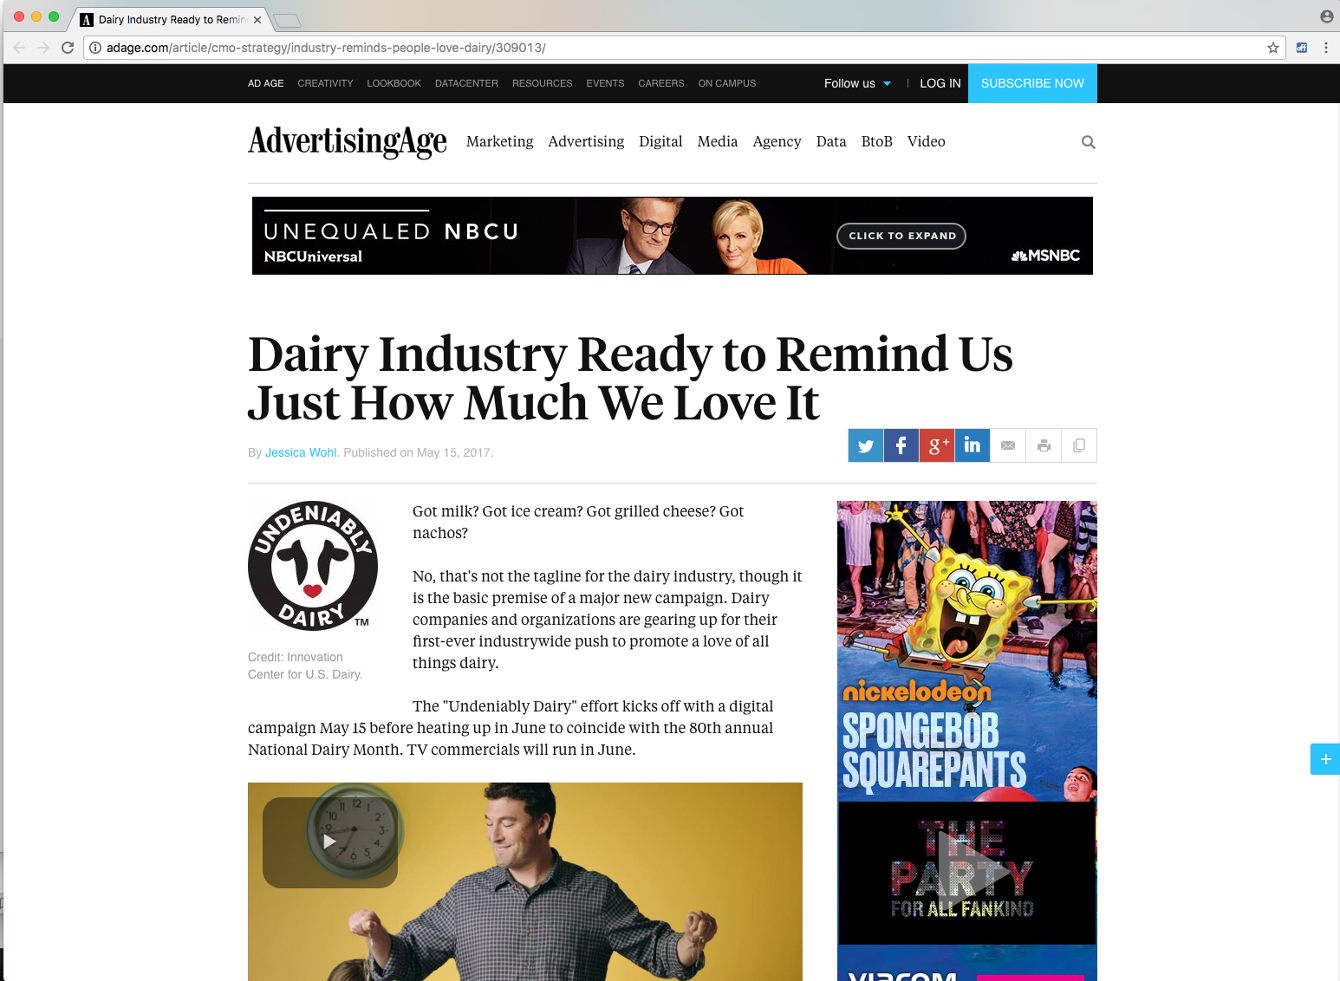 Dairy Management, Inc - Undeniably Dairy